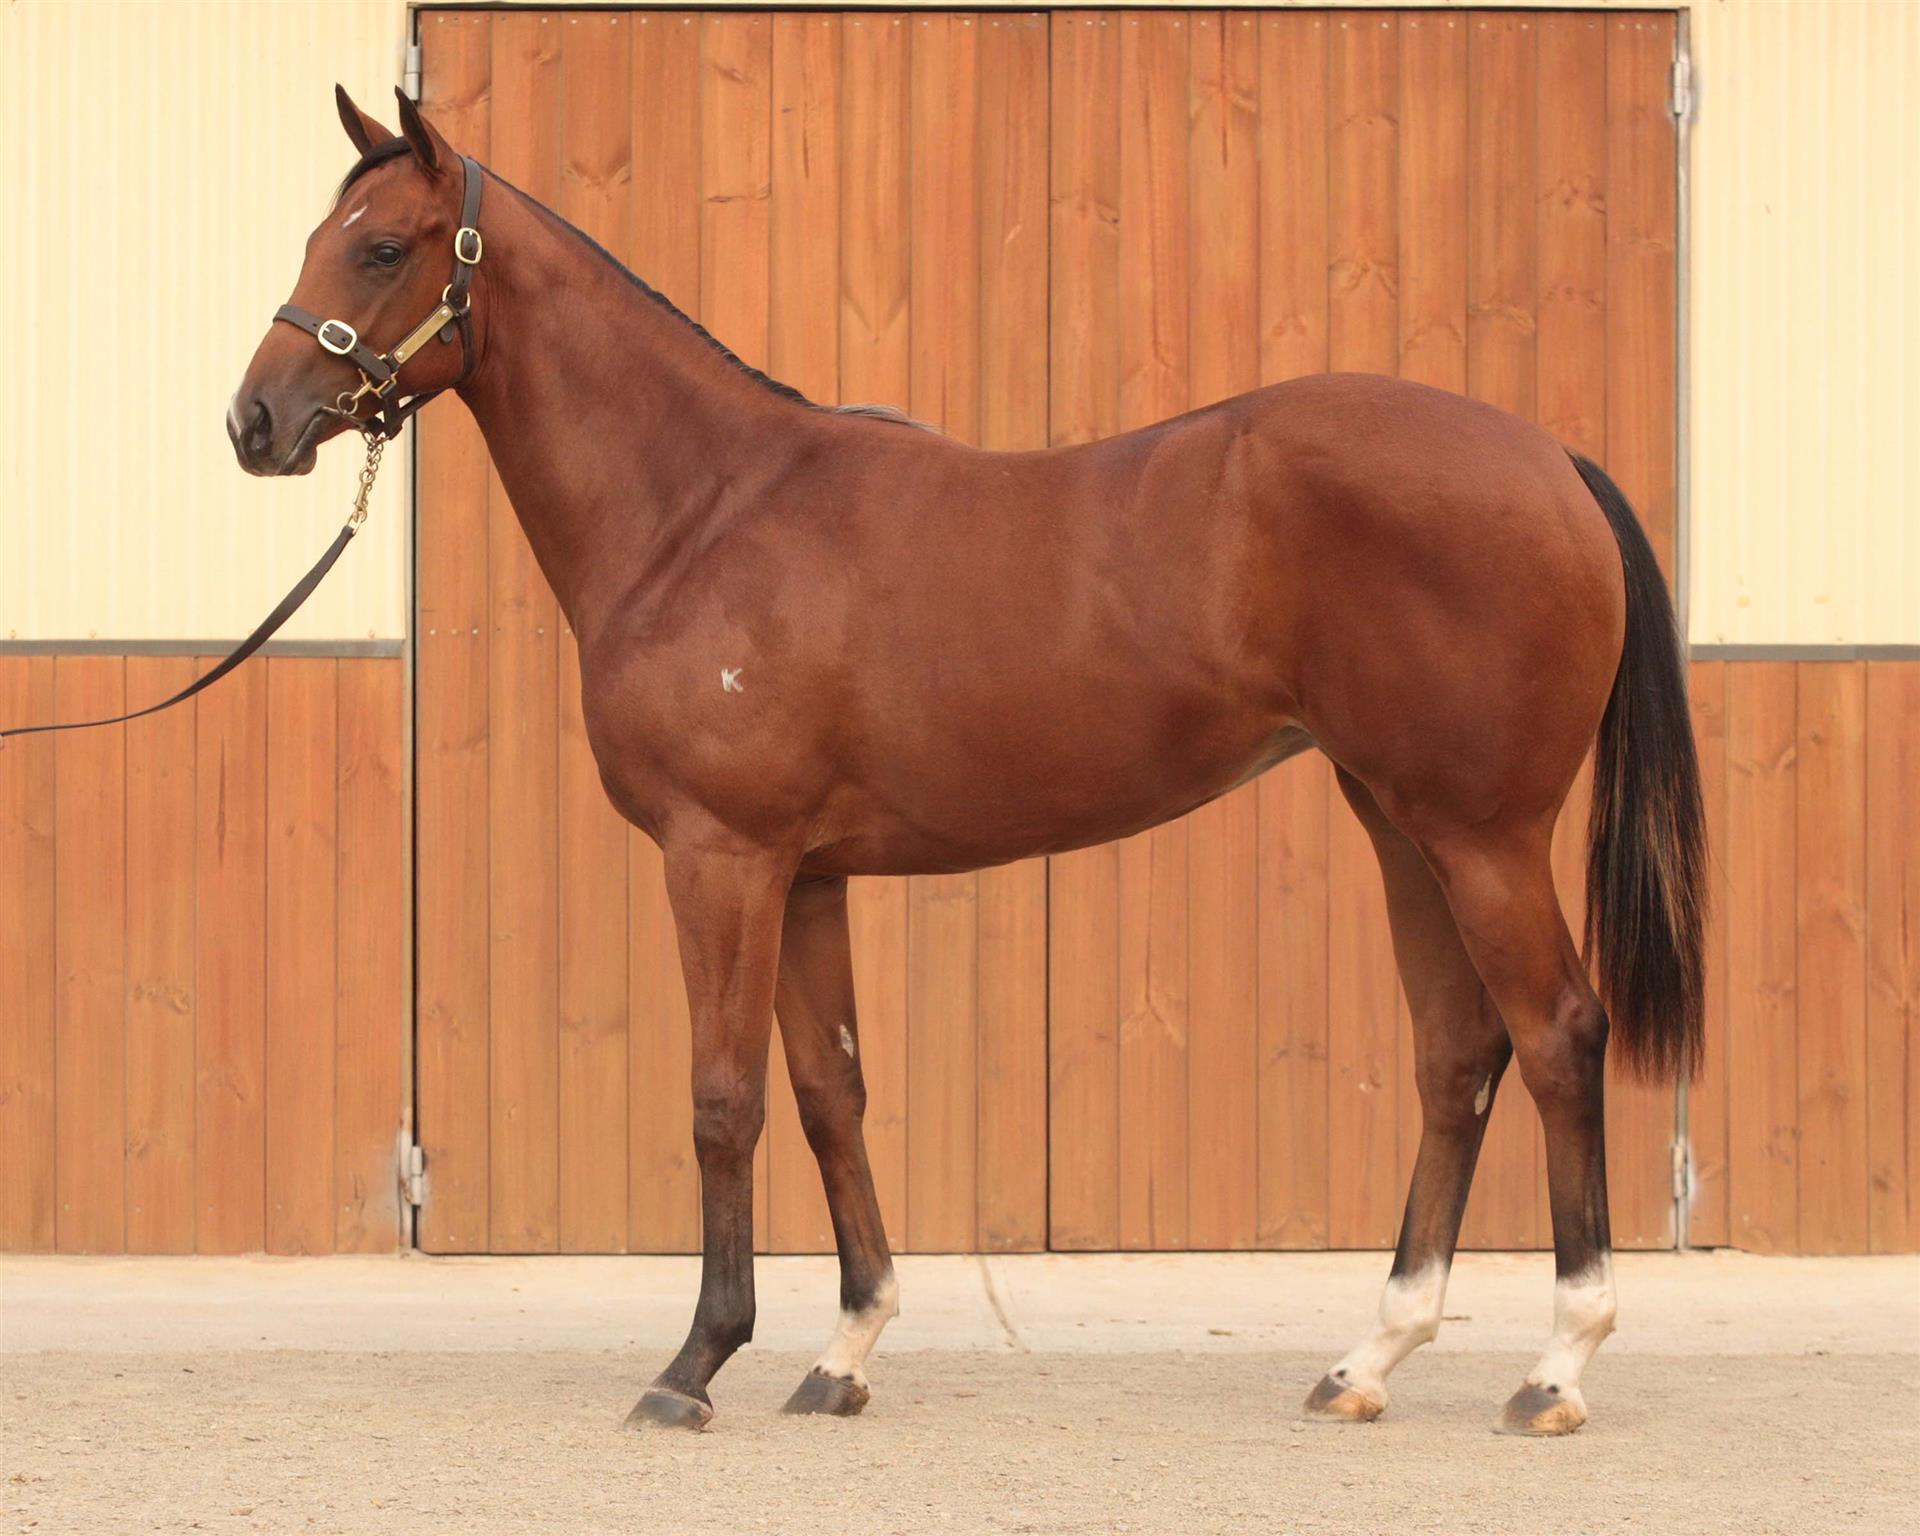 Inglis MPYS Lot 532, Starspangledbanner x Seducation